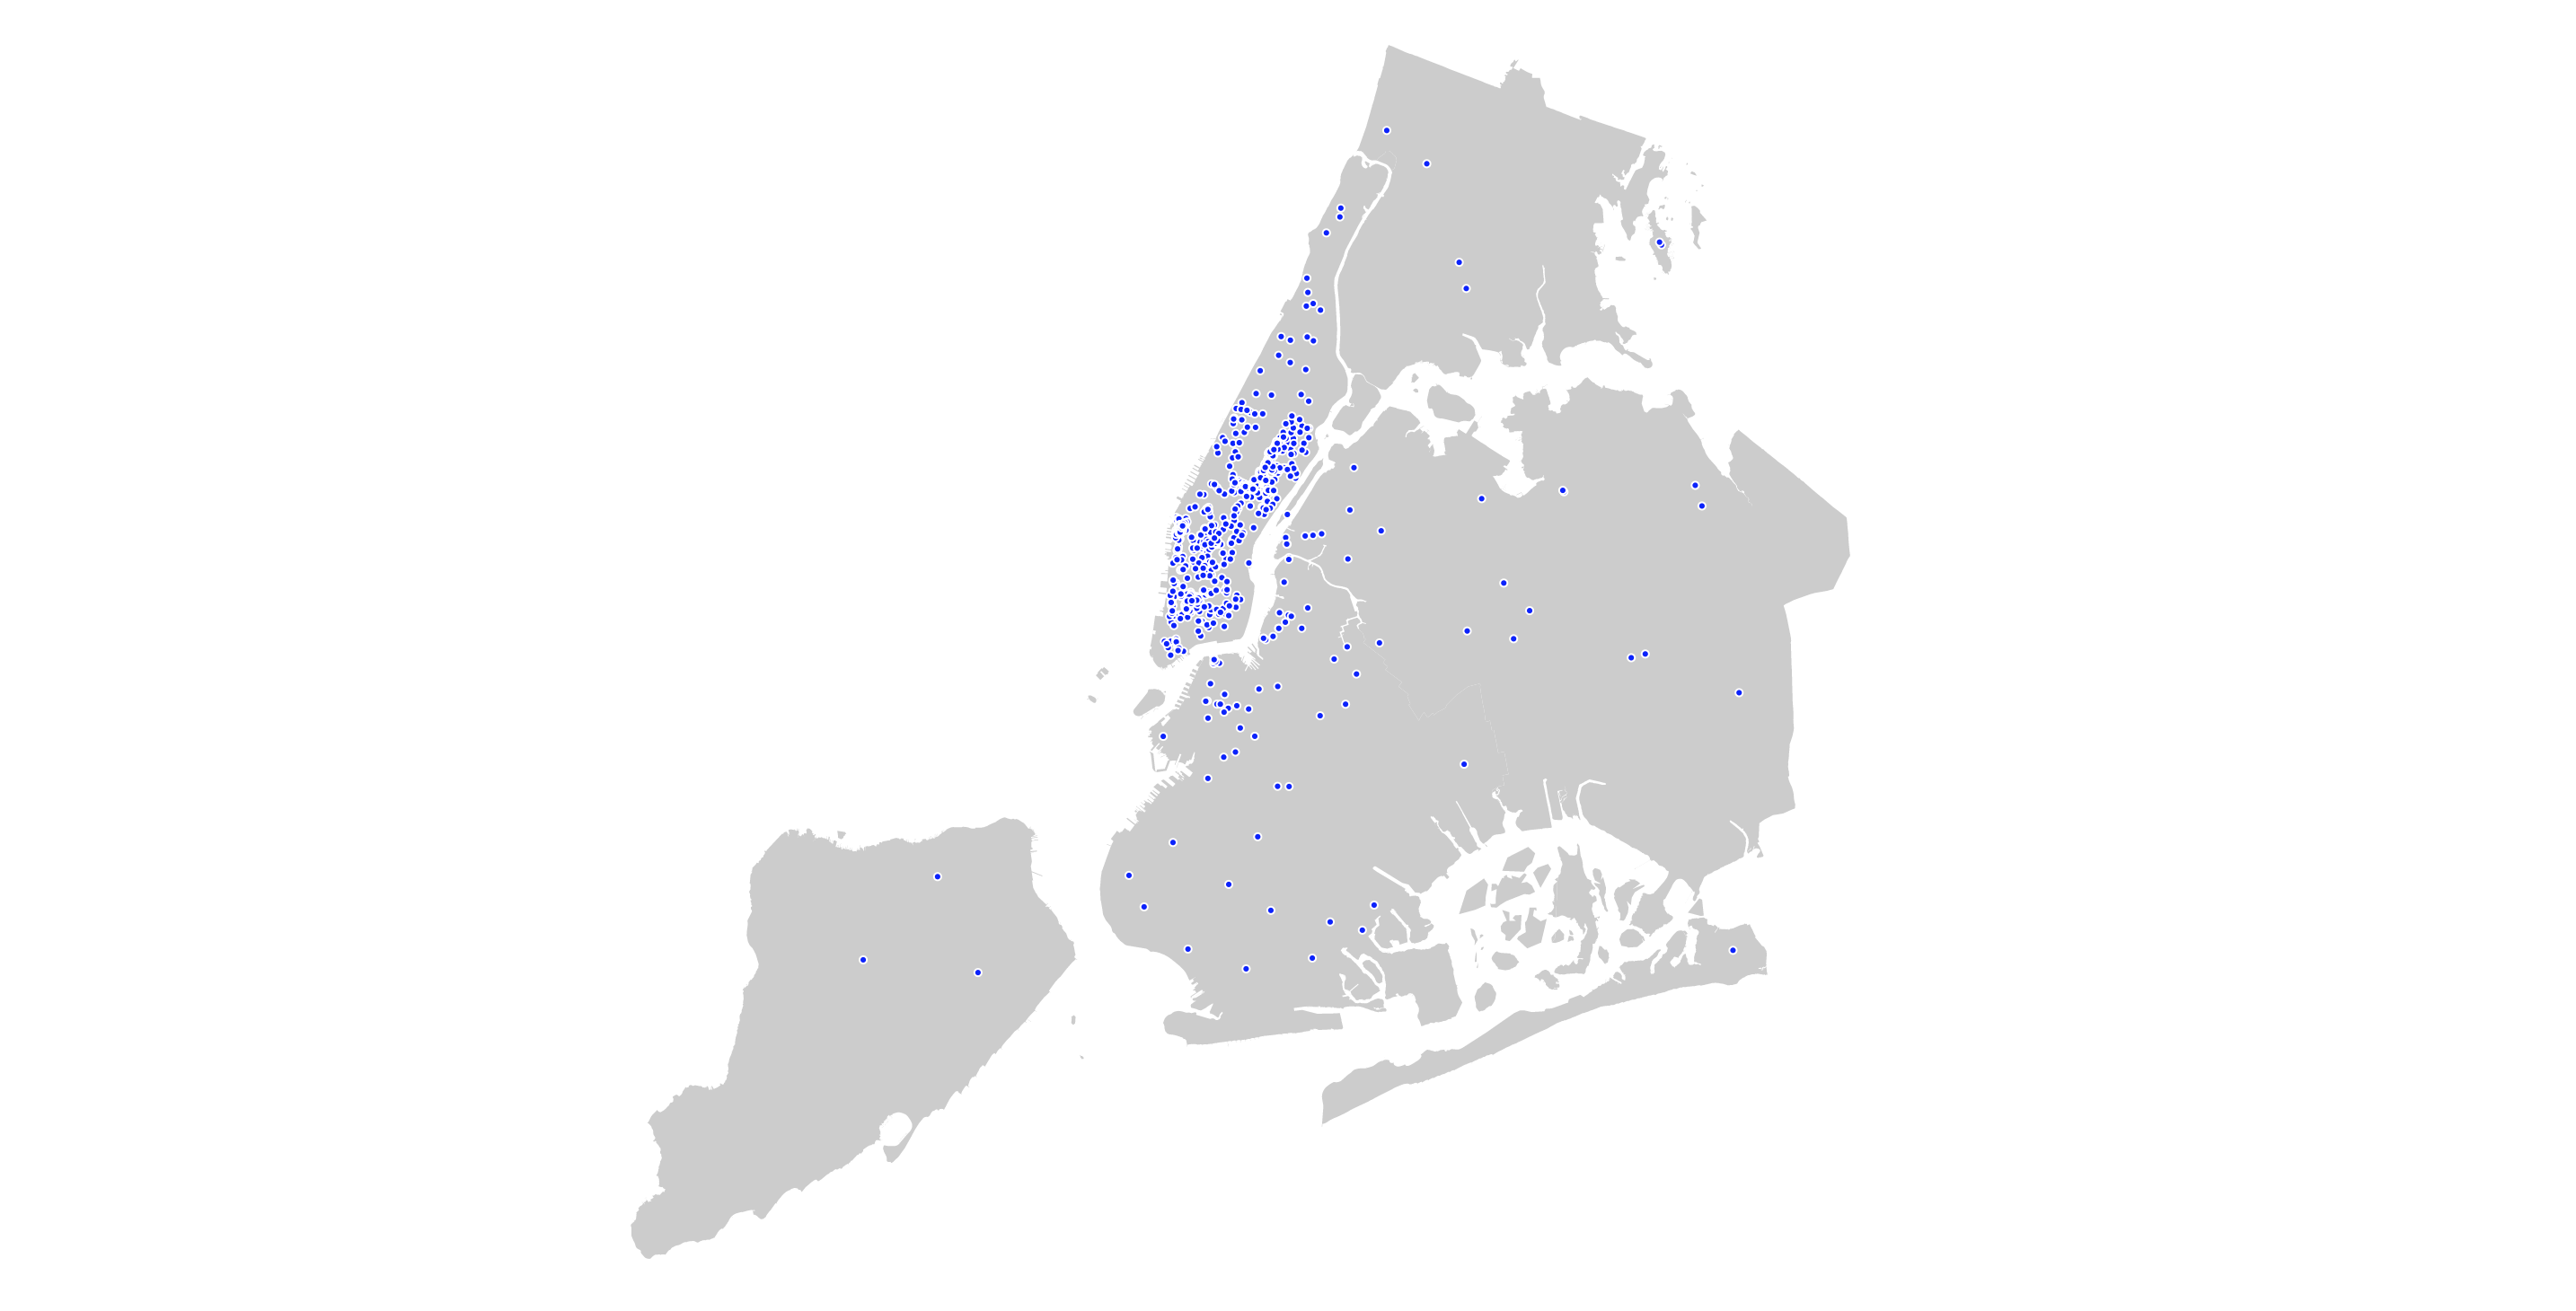 From Top A Dot Map Visualizing The Locations Of Art Galleries In Nyc A Snippet Of Geojson Data The D3 Js Mercator Projection The Locations Of Linknyc